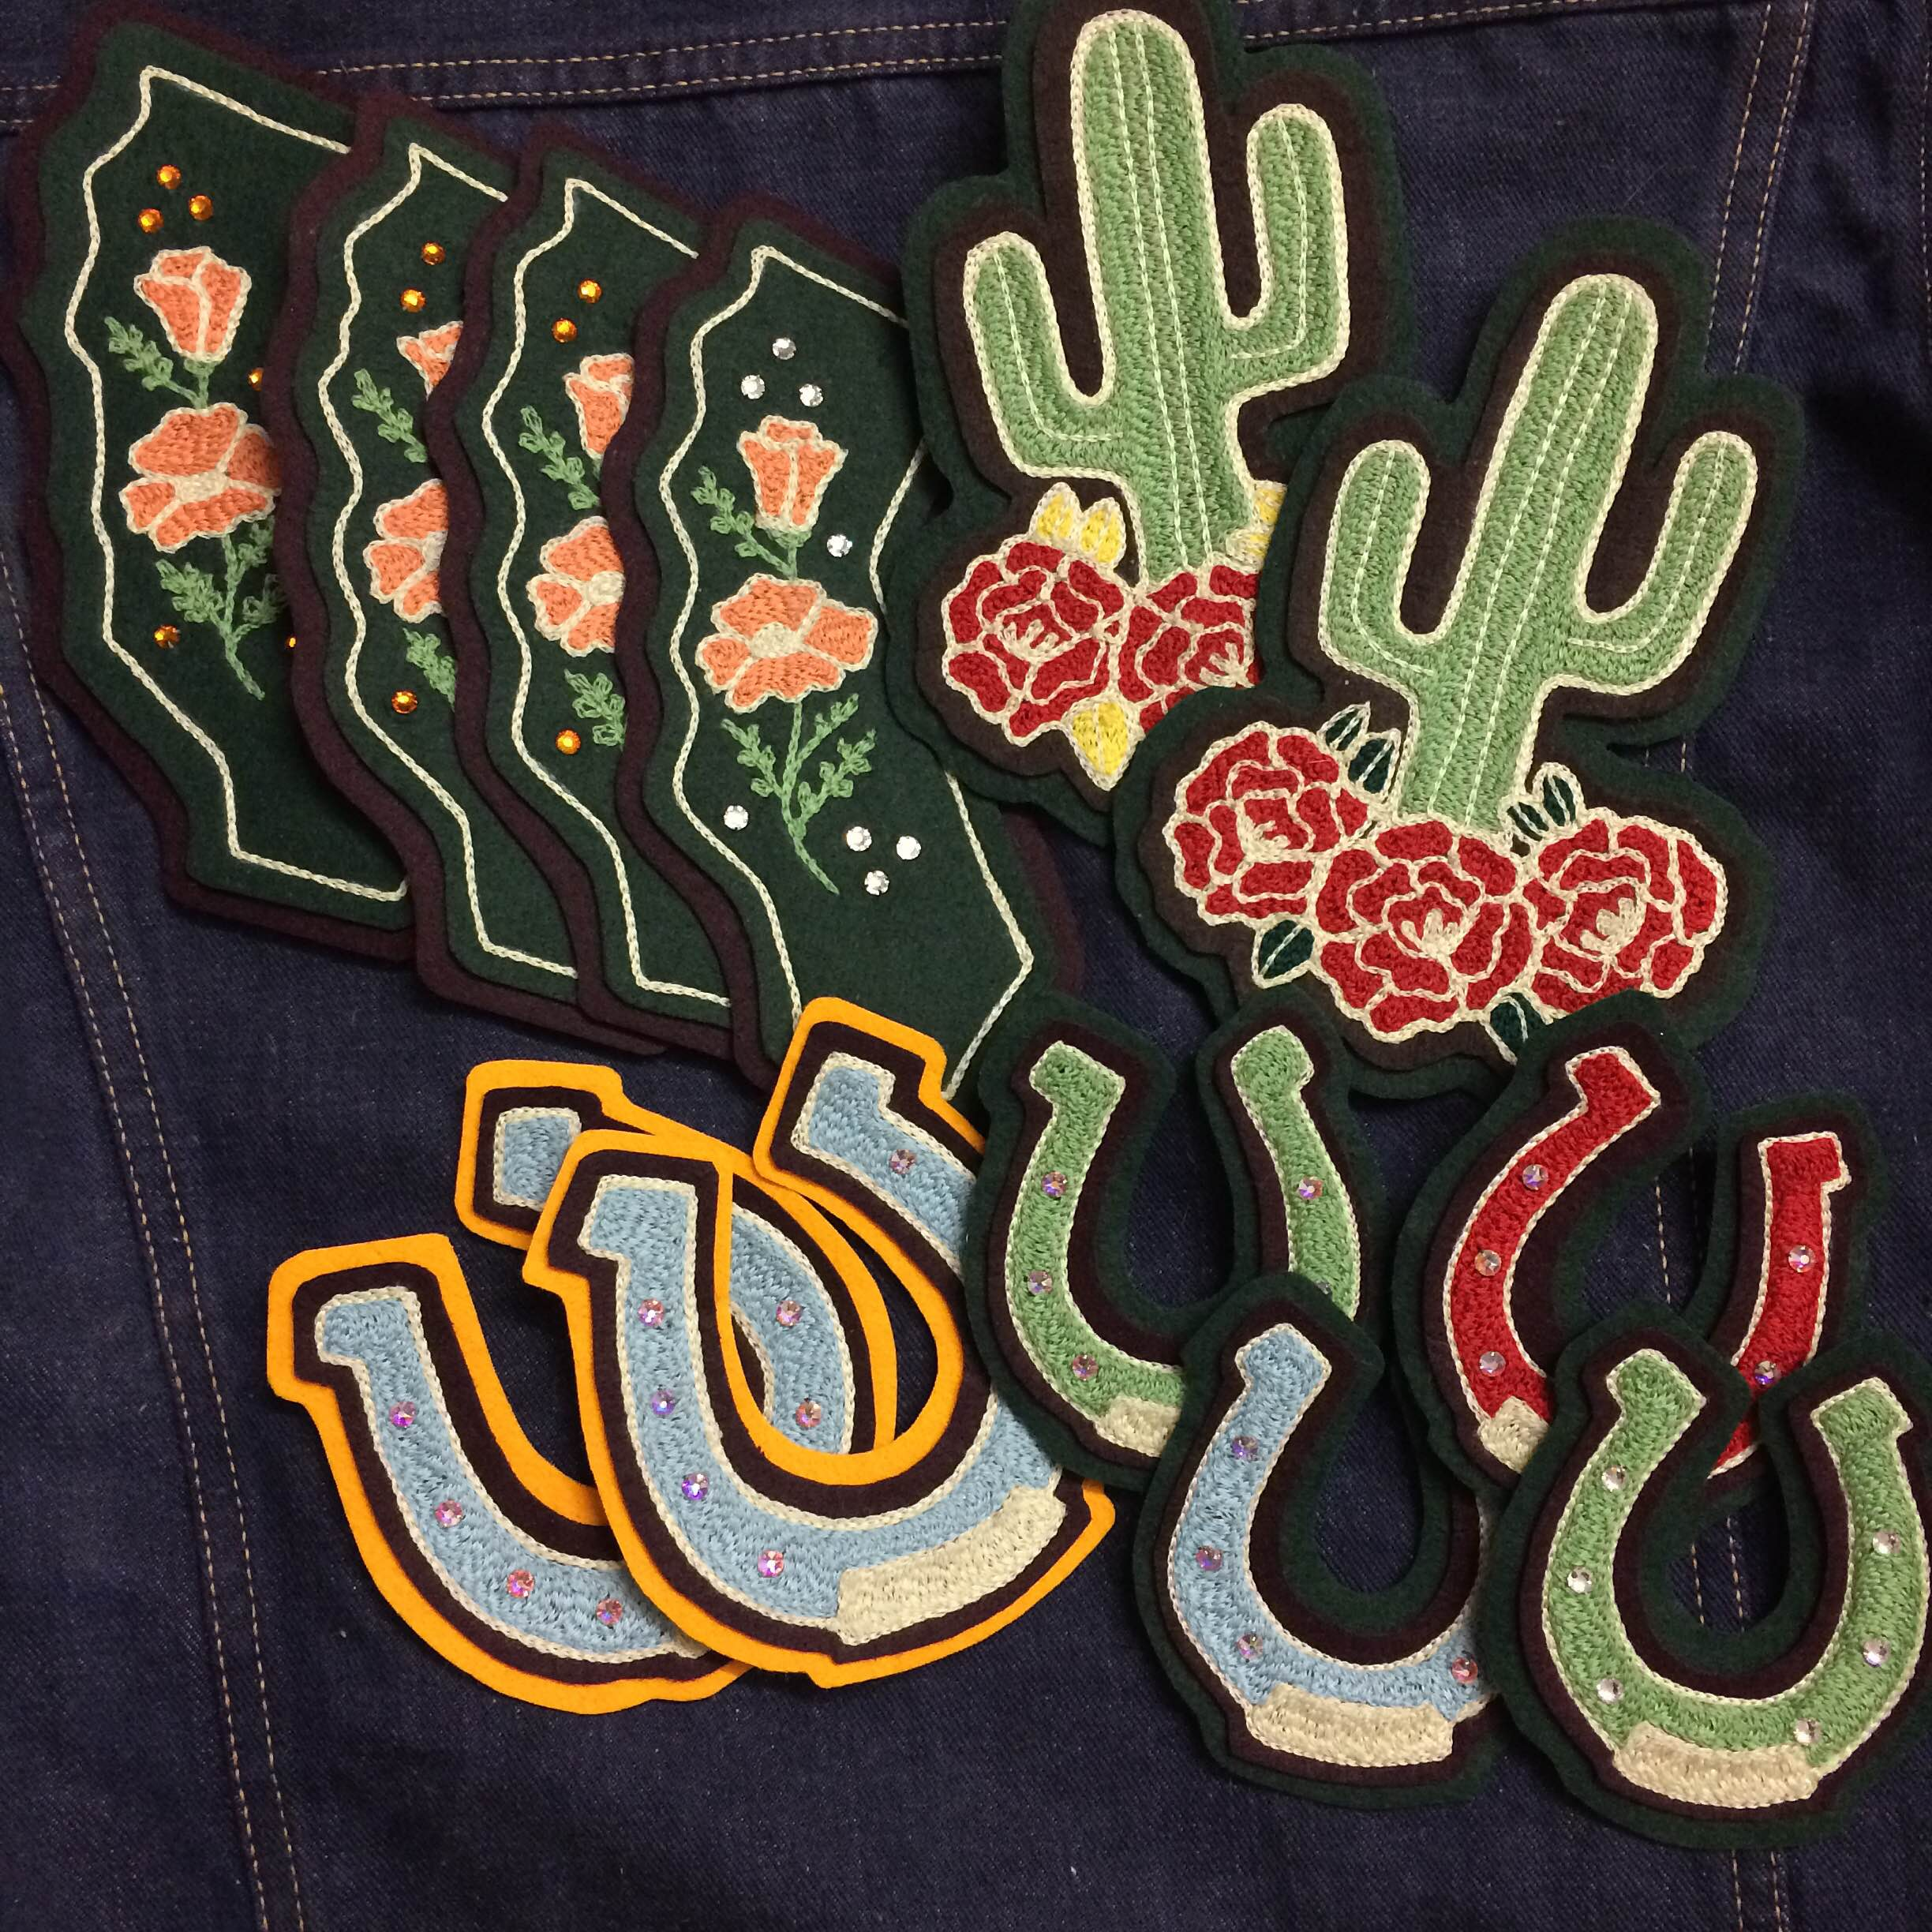 Chainstitch embroidered patches